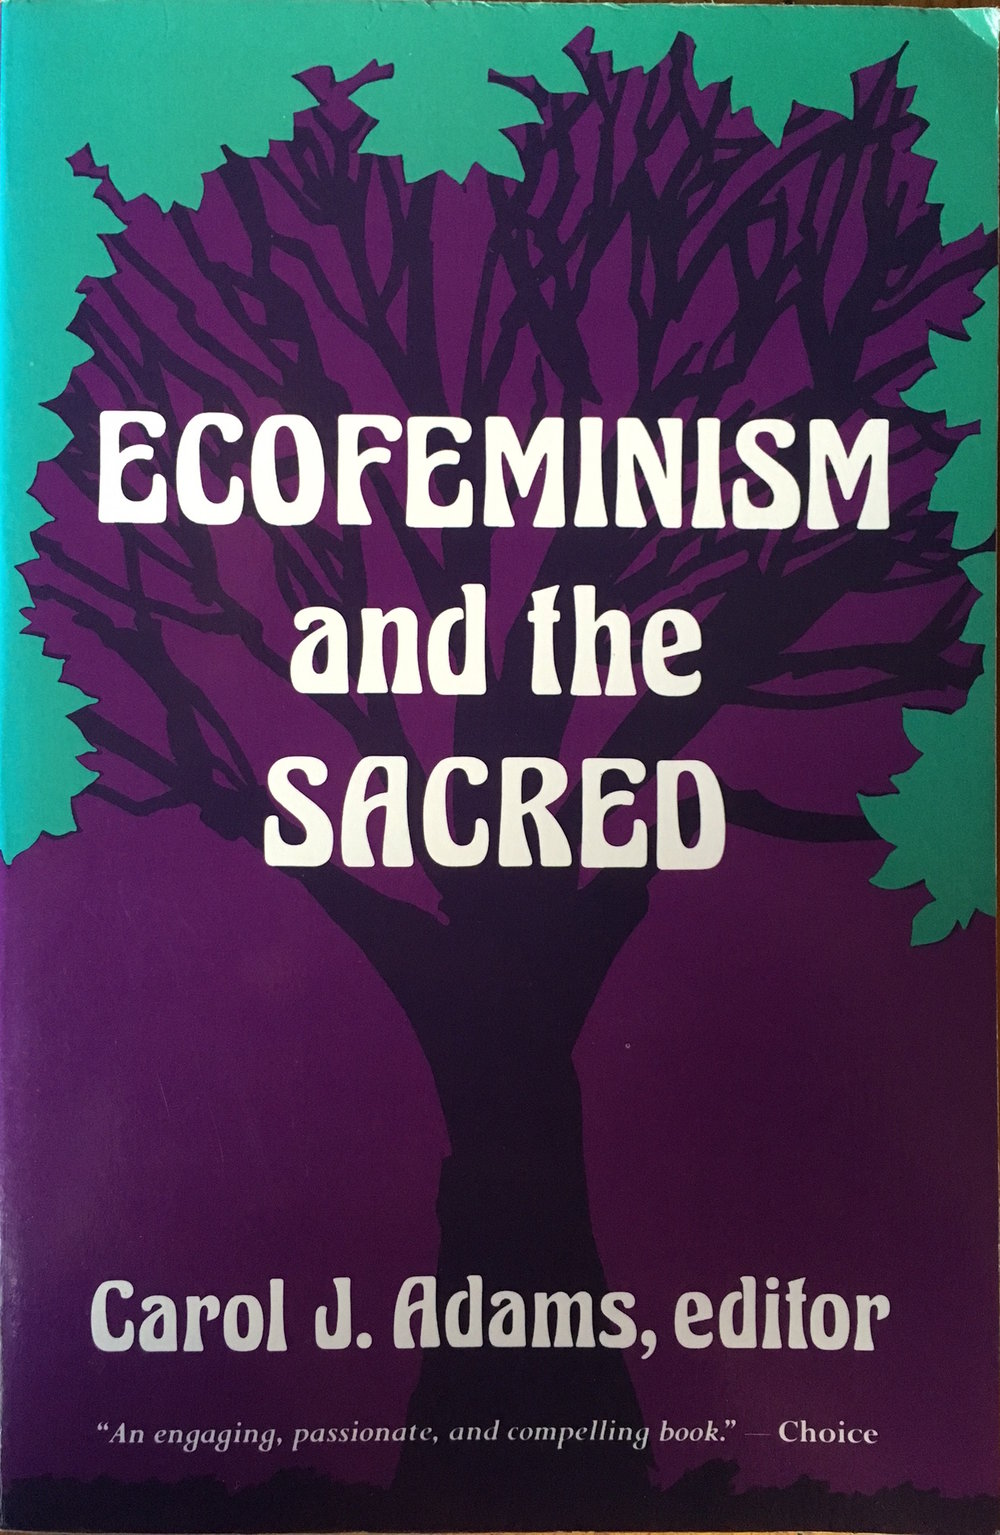 Ecofeminism and the Sacred